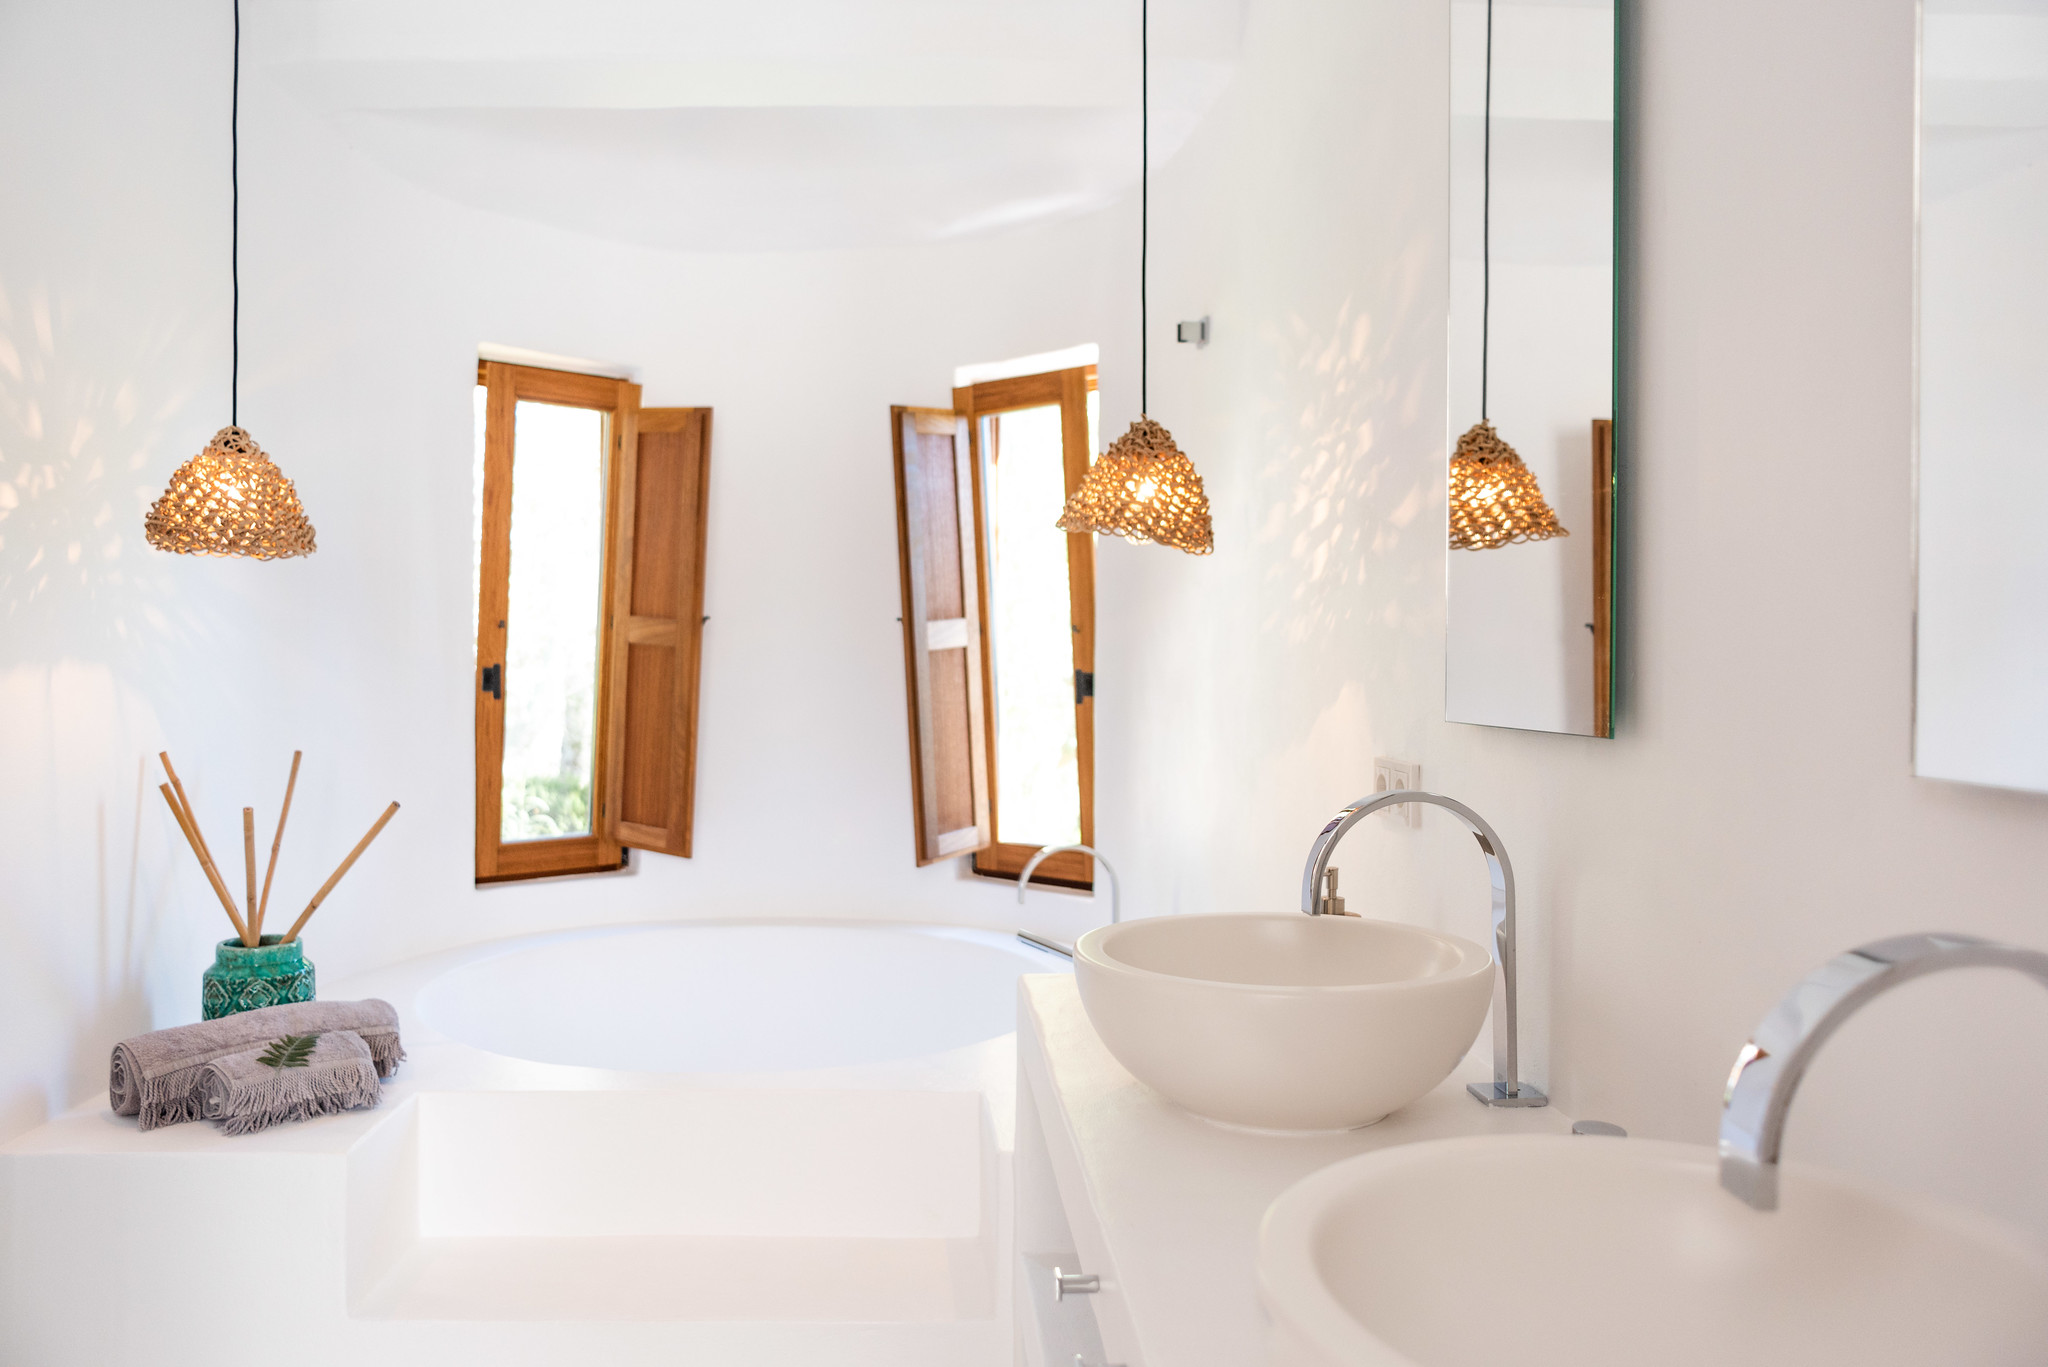 https://www.white-ibiza.com/wp-content/uploads/2020/05/white-ibiza-villas-can-cactus-bath.jpg